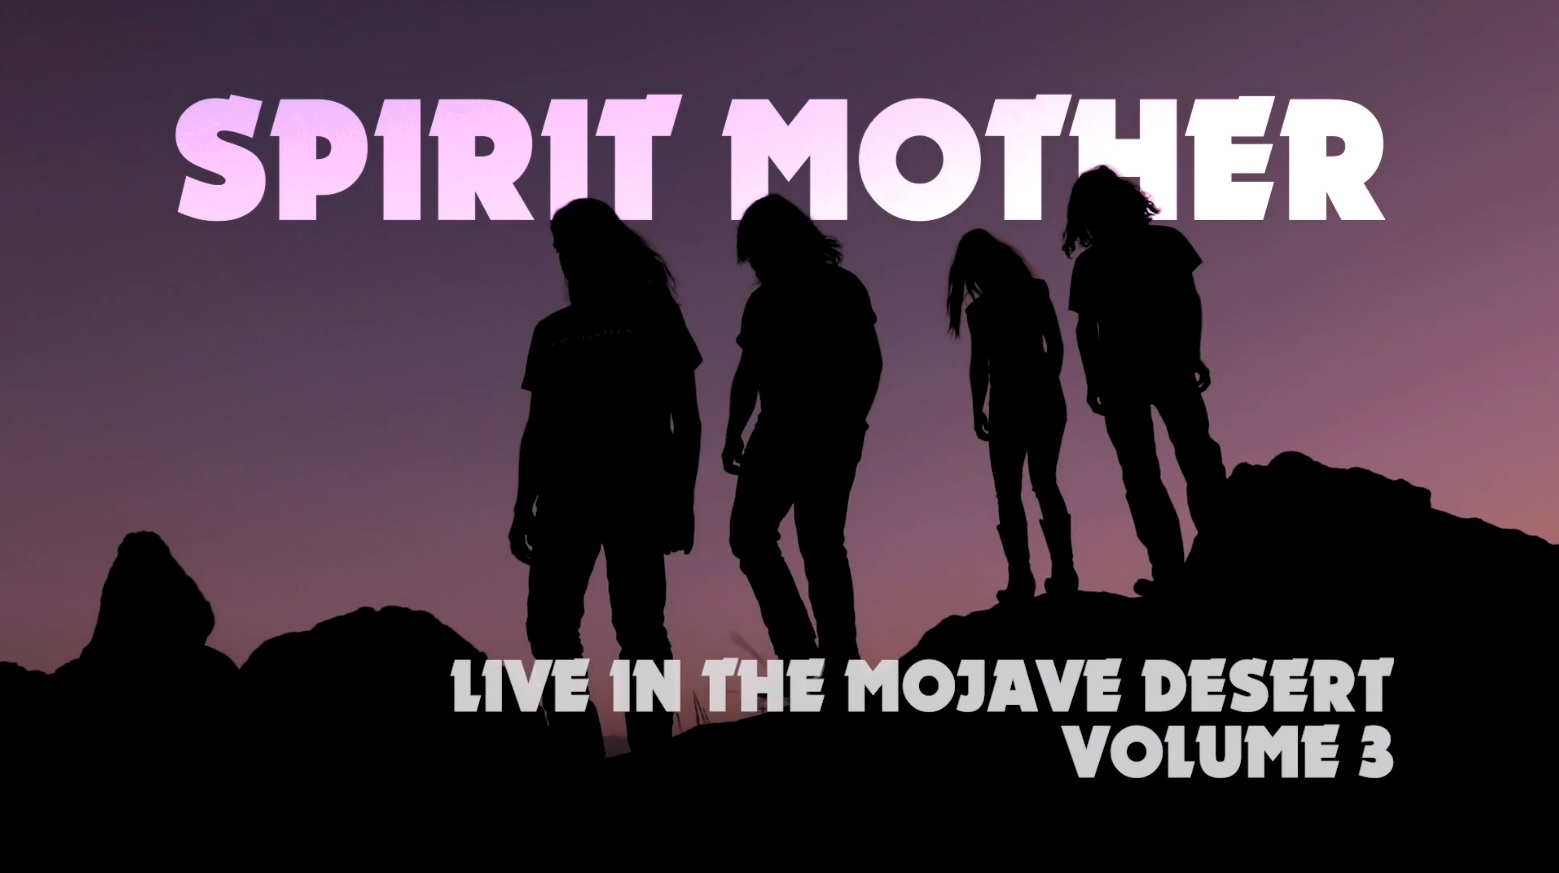 spirit mother live in the mojave desert vol 3